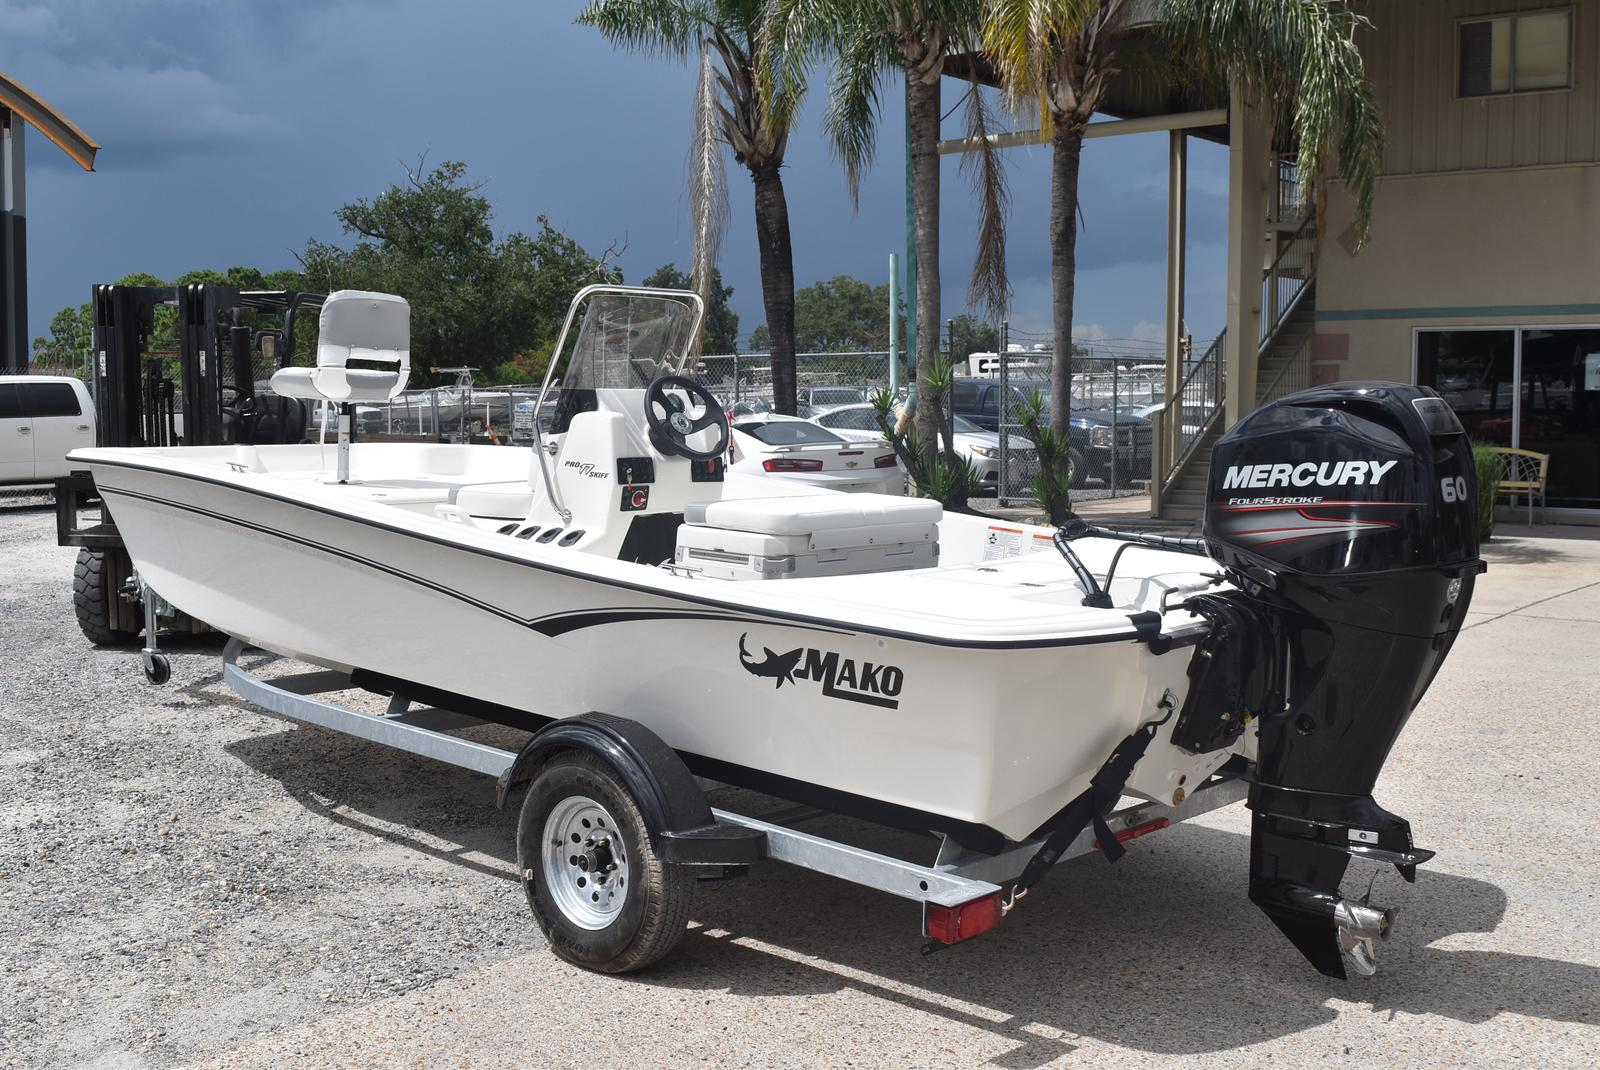 2020 Mako boat for sale, model of the boat is Pro Skiff 17, 75 ELPT & Image # 217 of 702